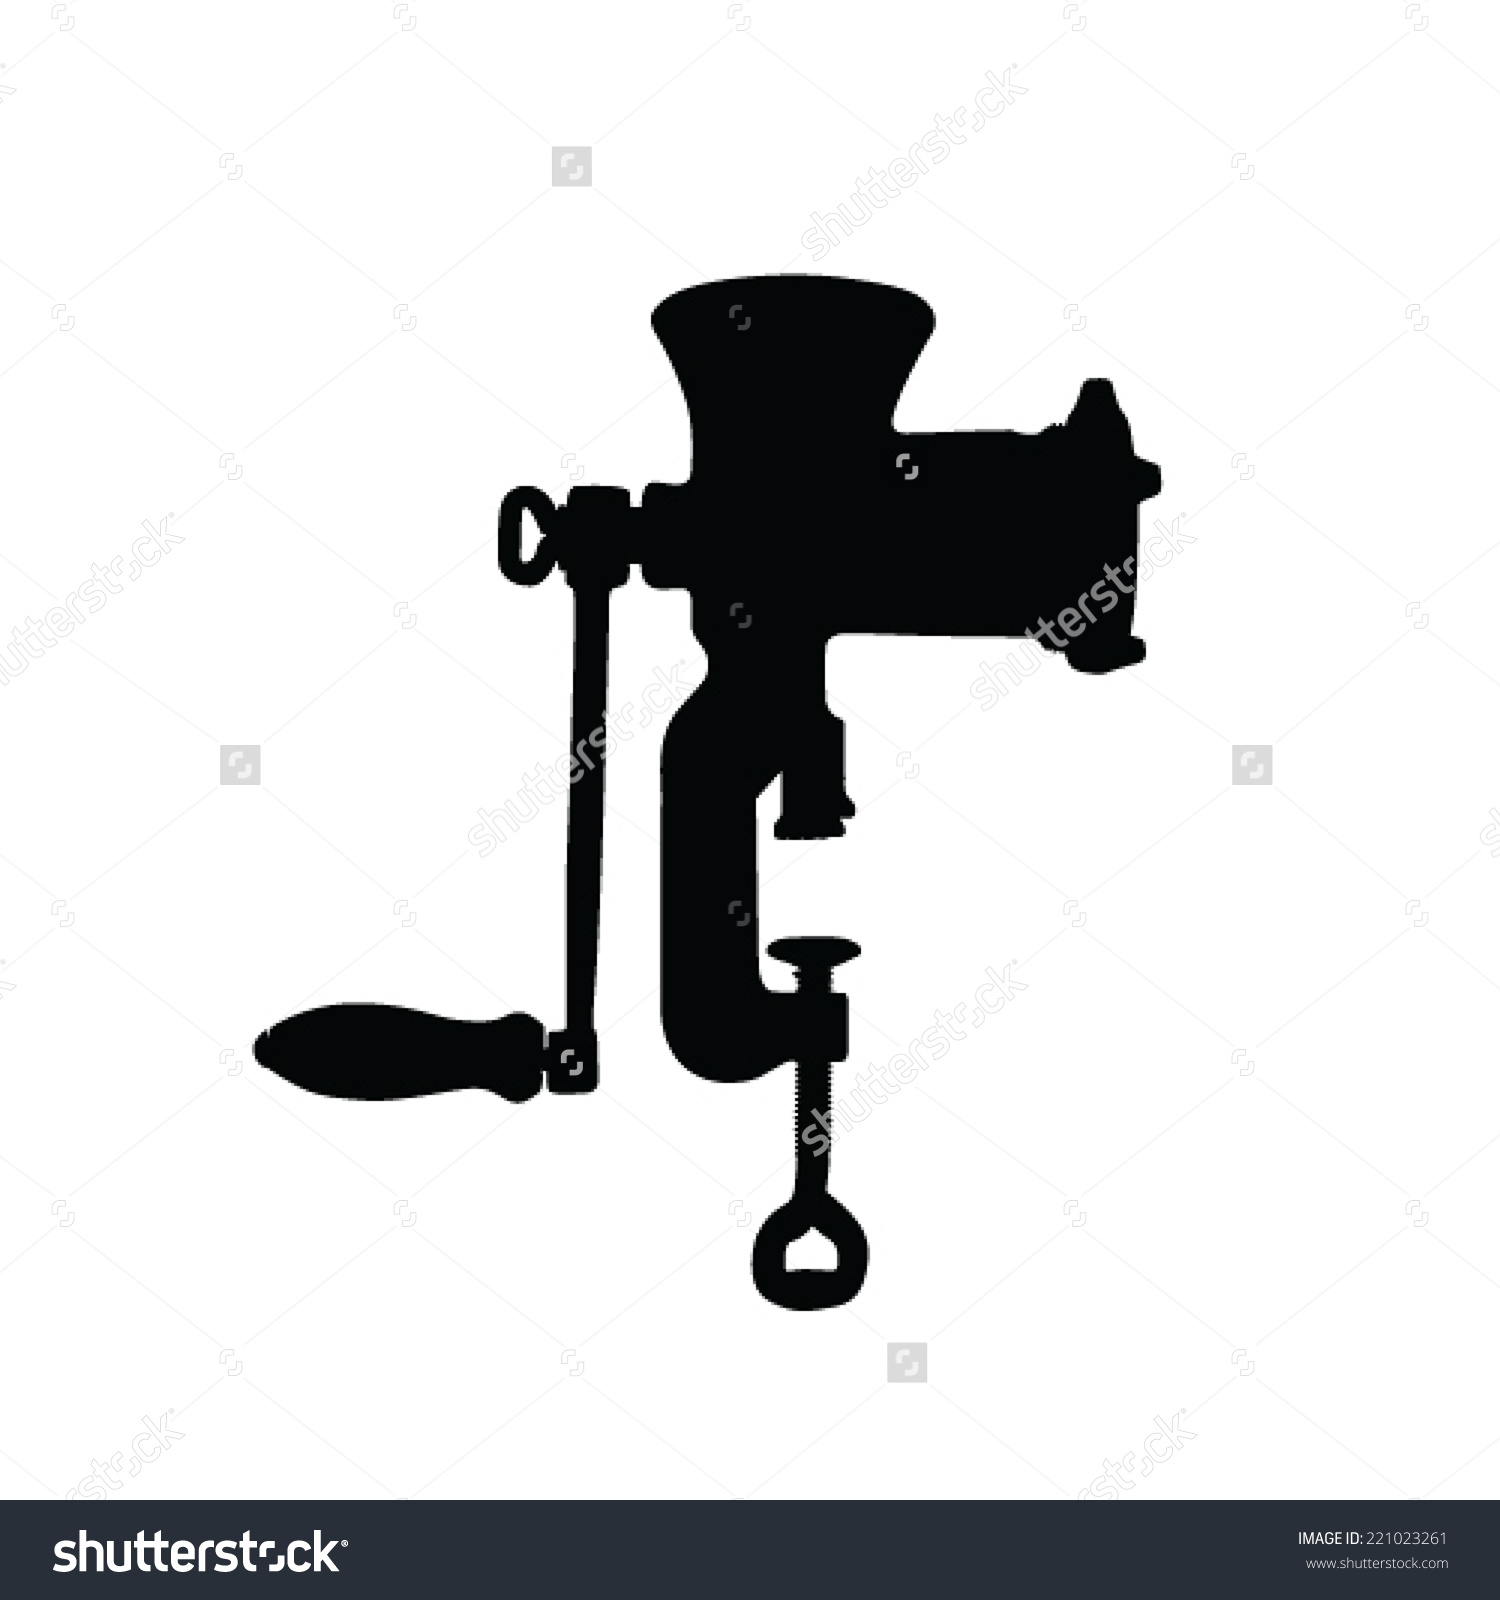 Meat Grinder Vector Silhouette Stock Vector 221023261.